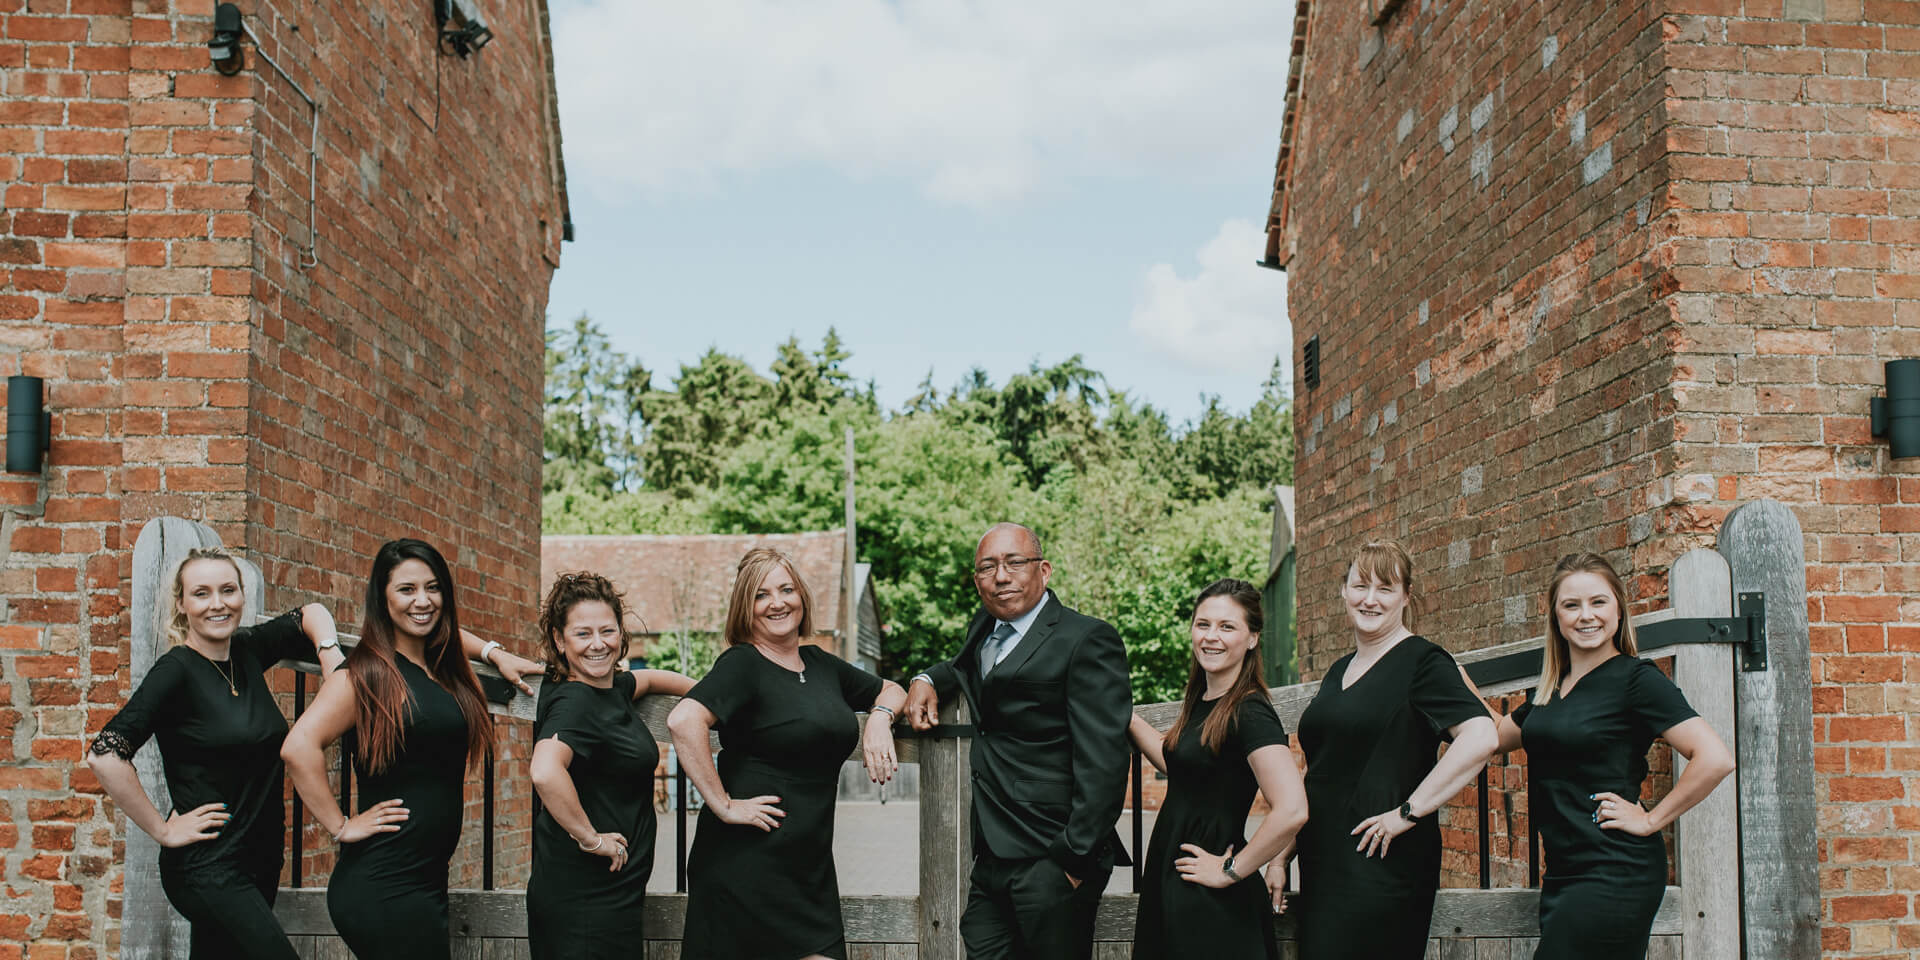 The fantastic events team is here every step of the way to help you plan your perfect wedding day at Bassmead Manor Barns